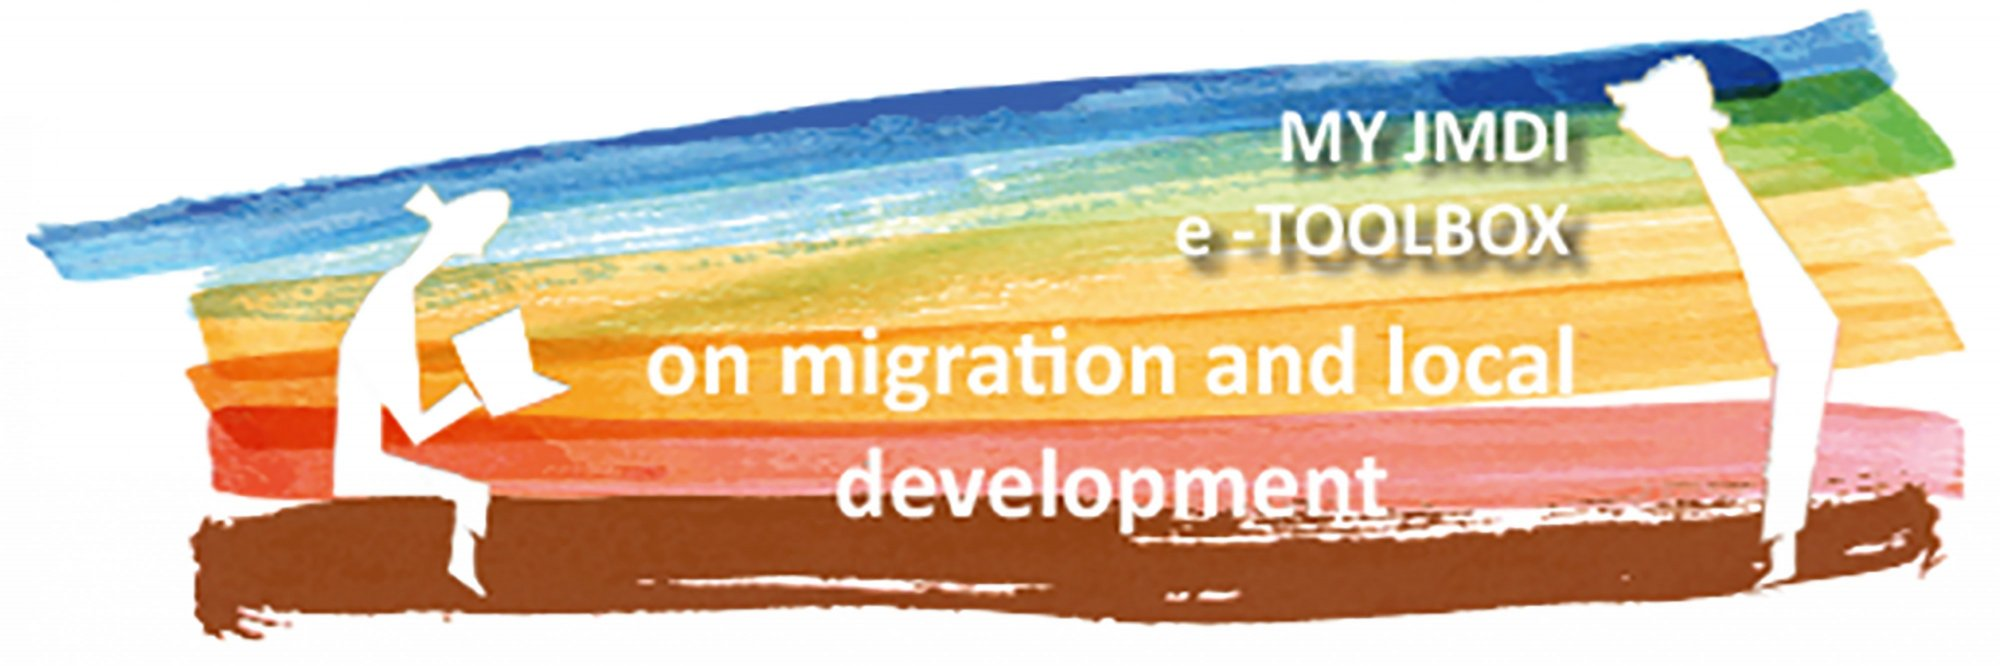 My JMDI e-Toolbox on Migration and Local Development